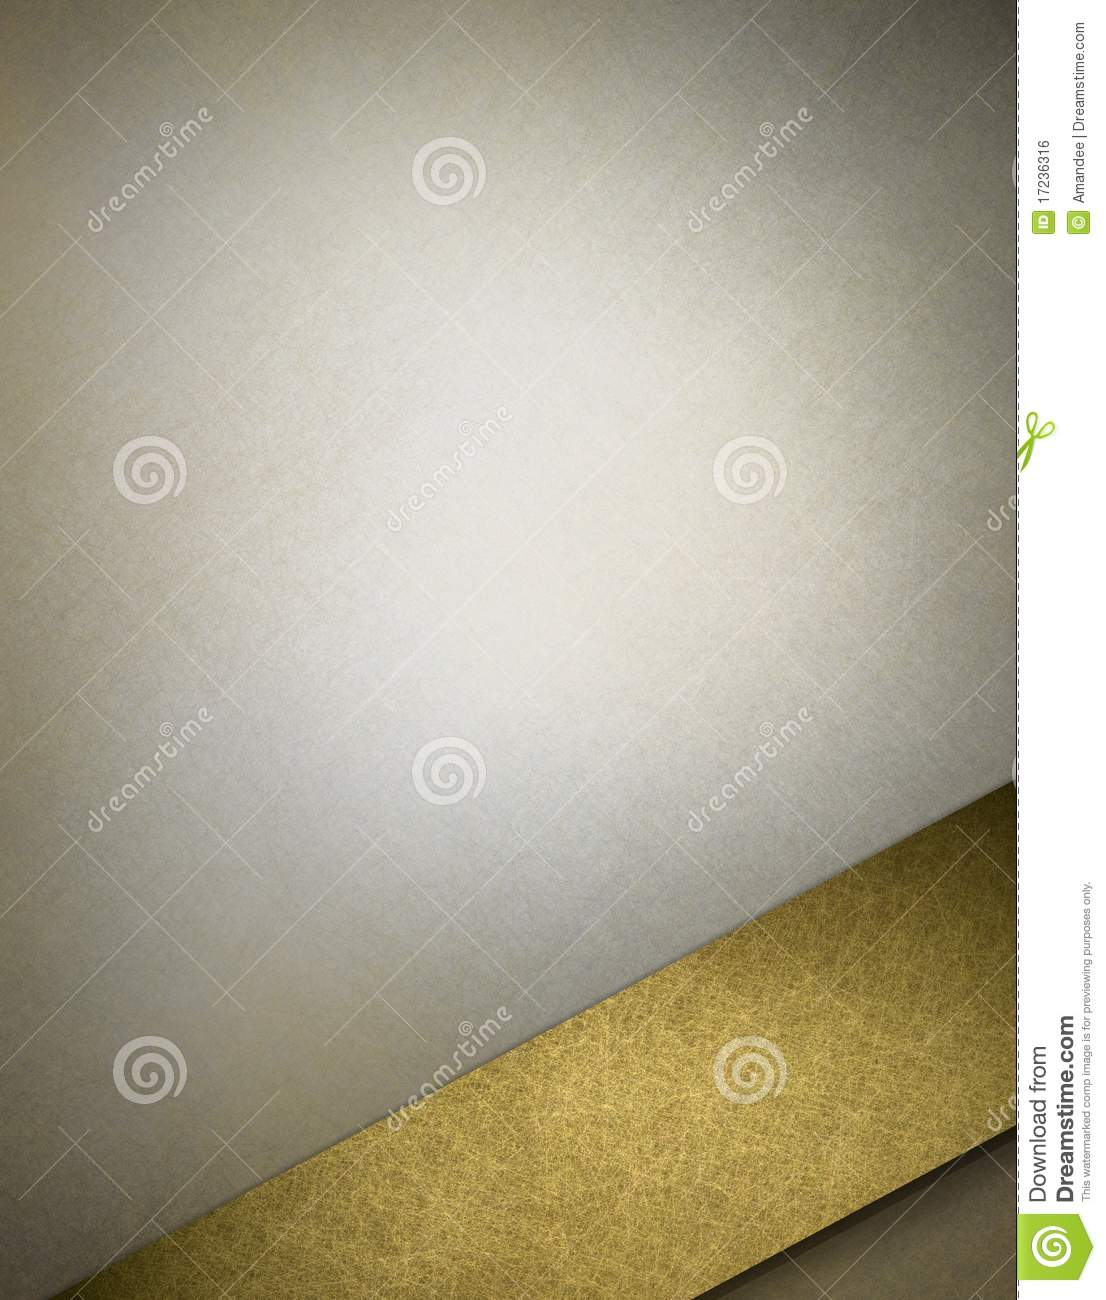 silver gray and gold background cover stock illustration